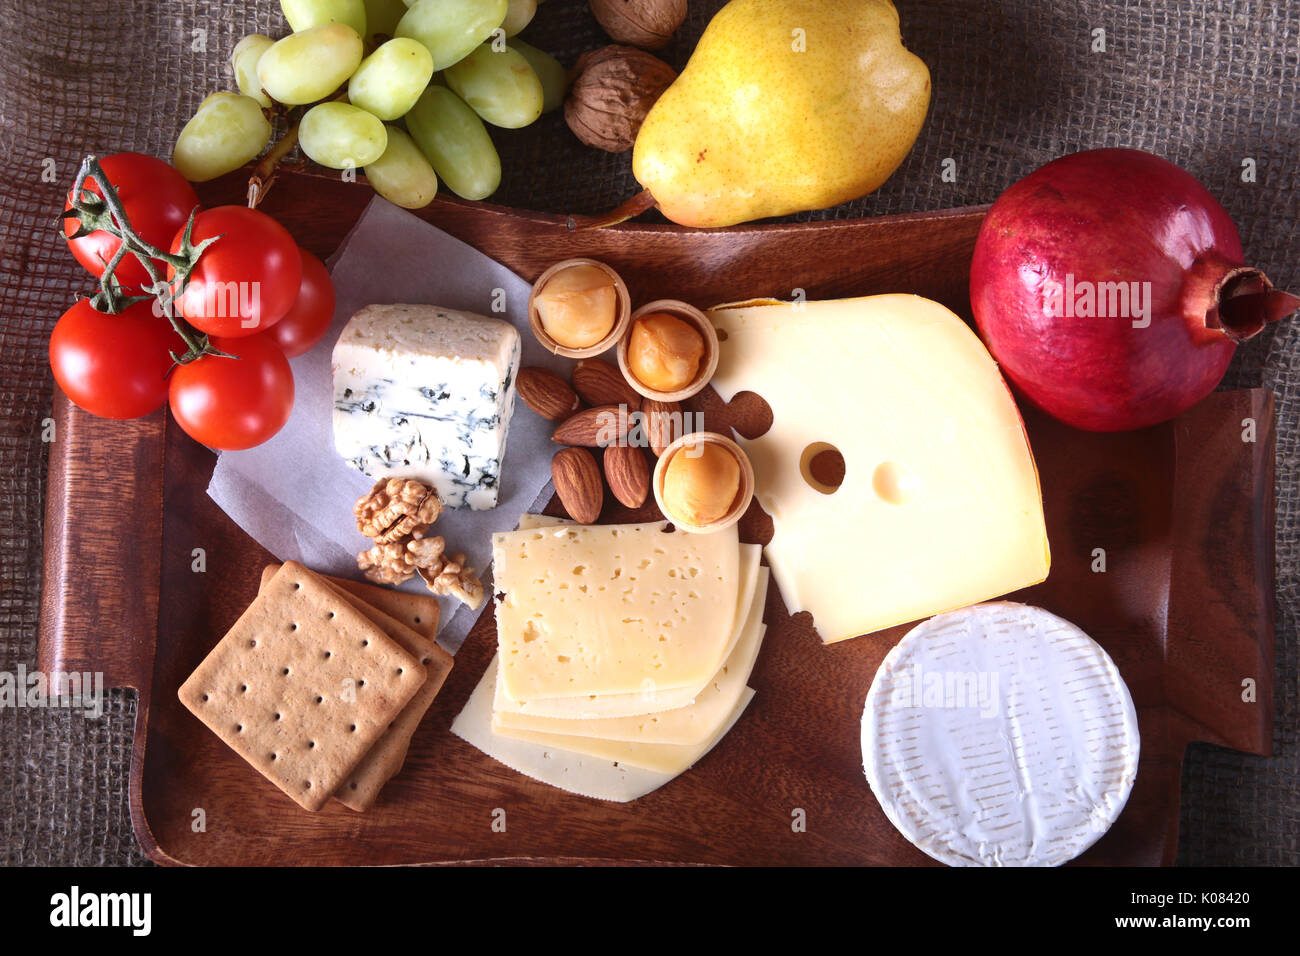 Assortment of cheese with fruits, grapes and nuts on a wooden serving tray. - Stock Image